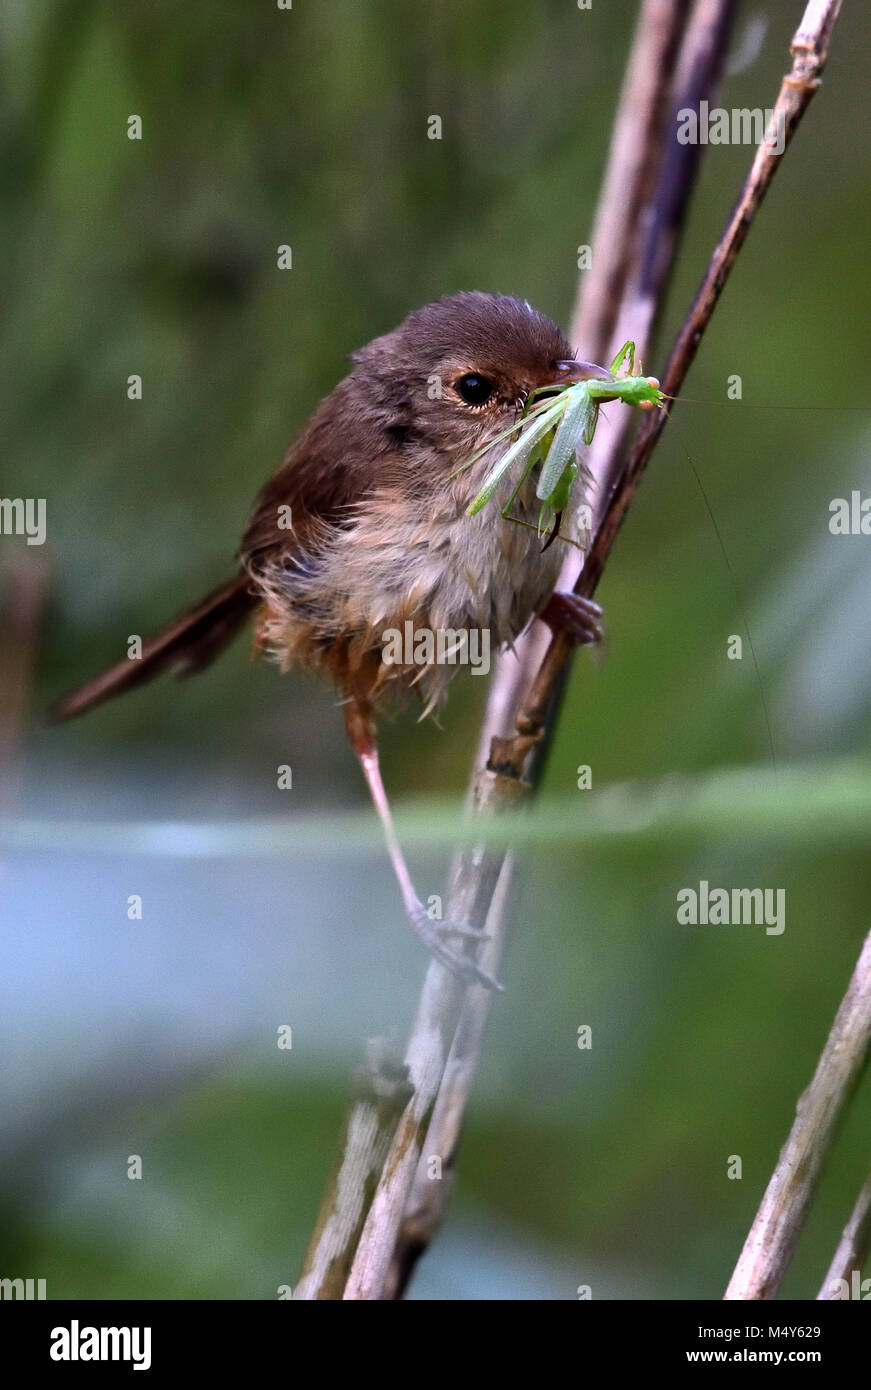 An Australian Female Red-backed Fairy-wren with an Insect in its mouth - Stock Image